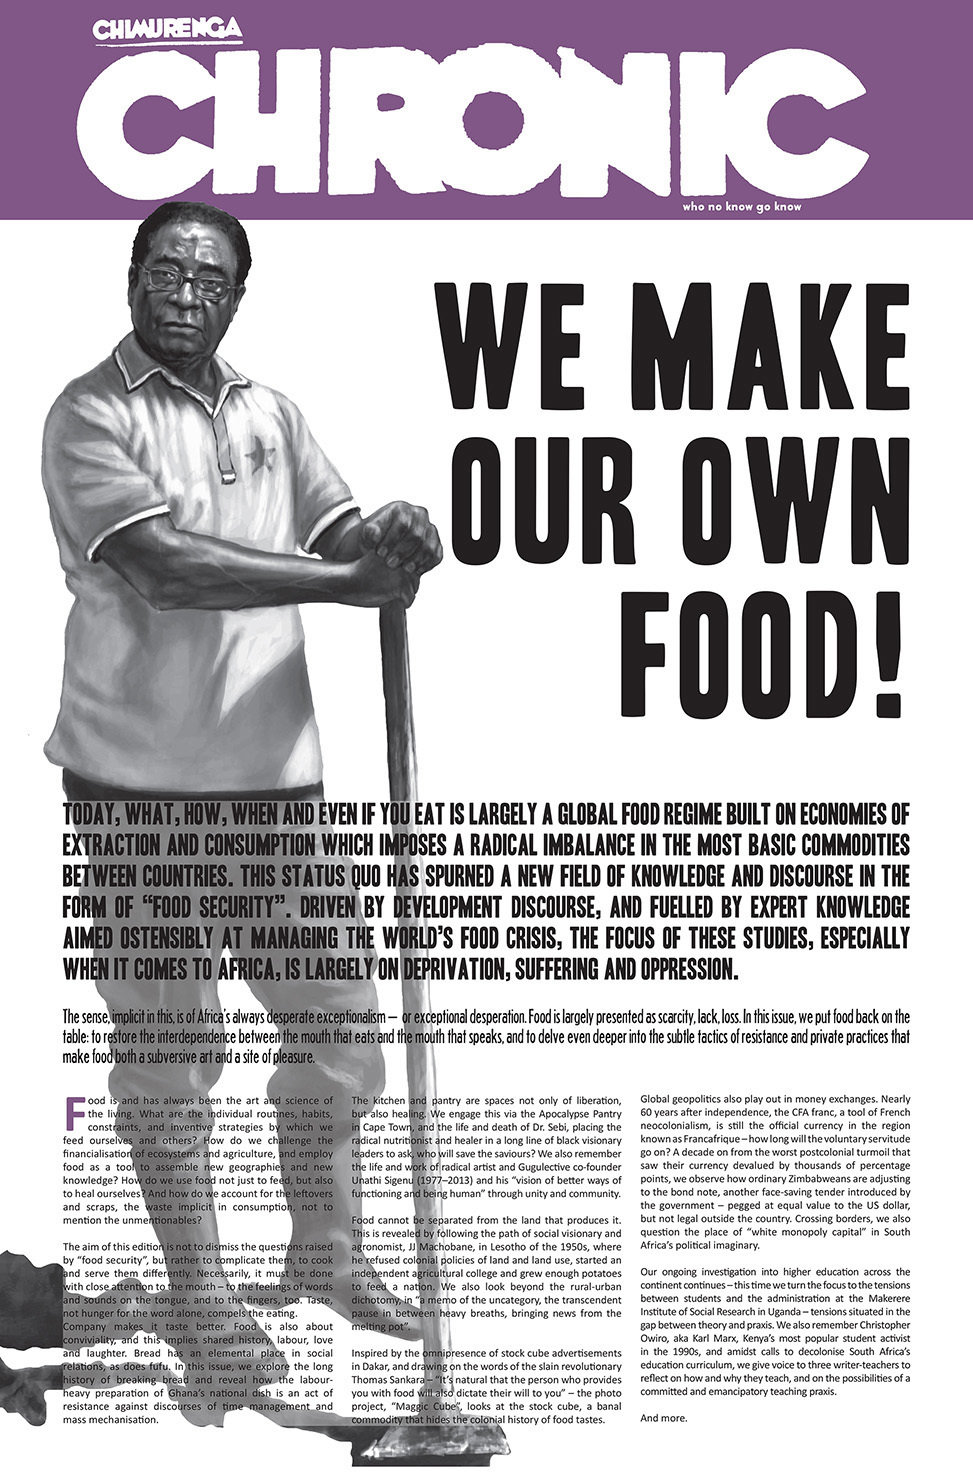 Chimurenga Chronic: We Make Our Own Food! (April 2017) Print